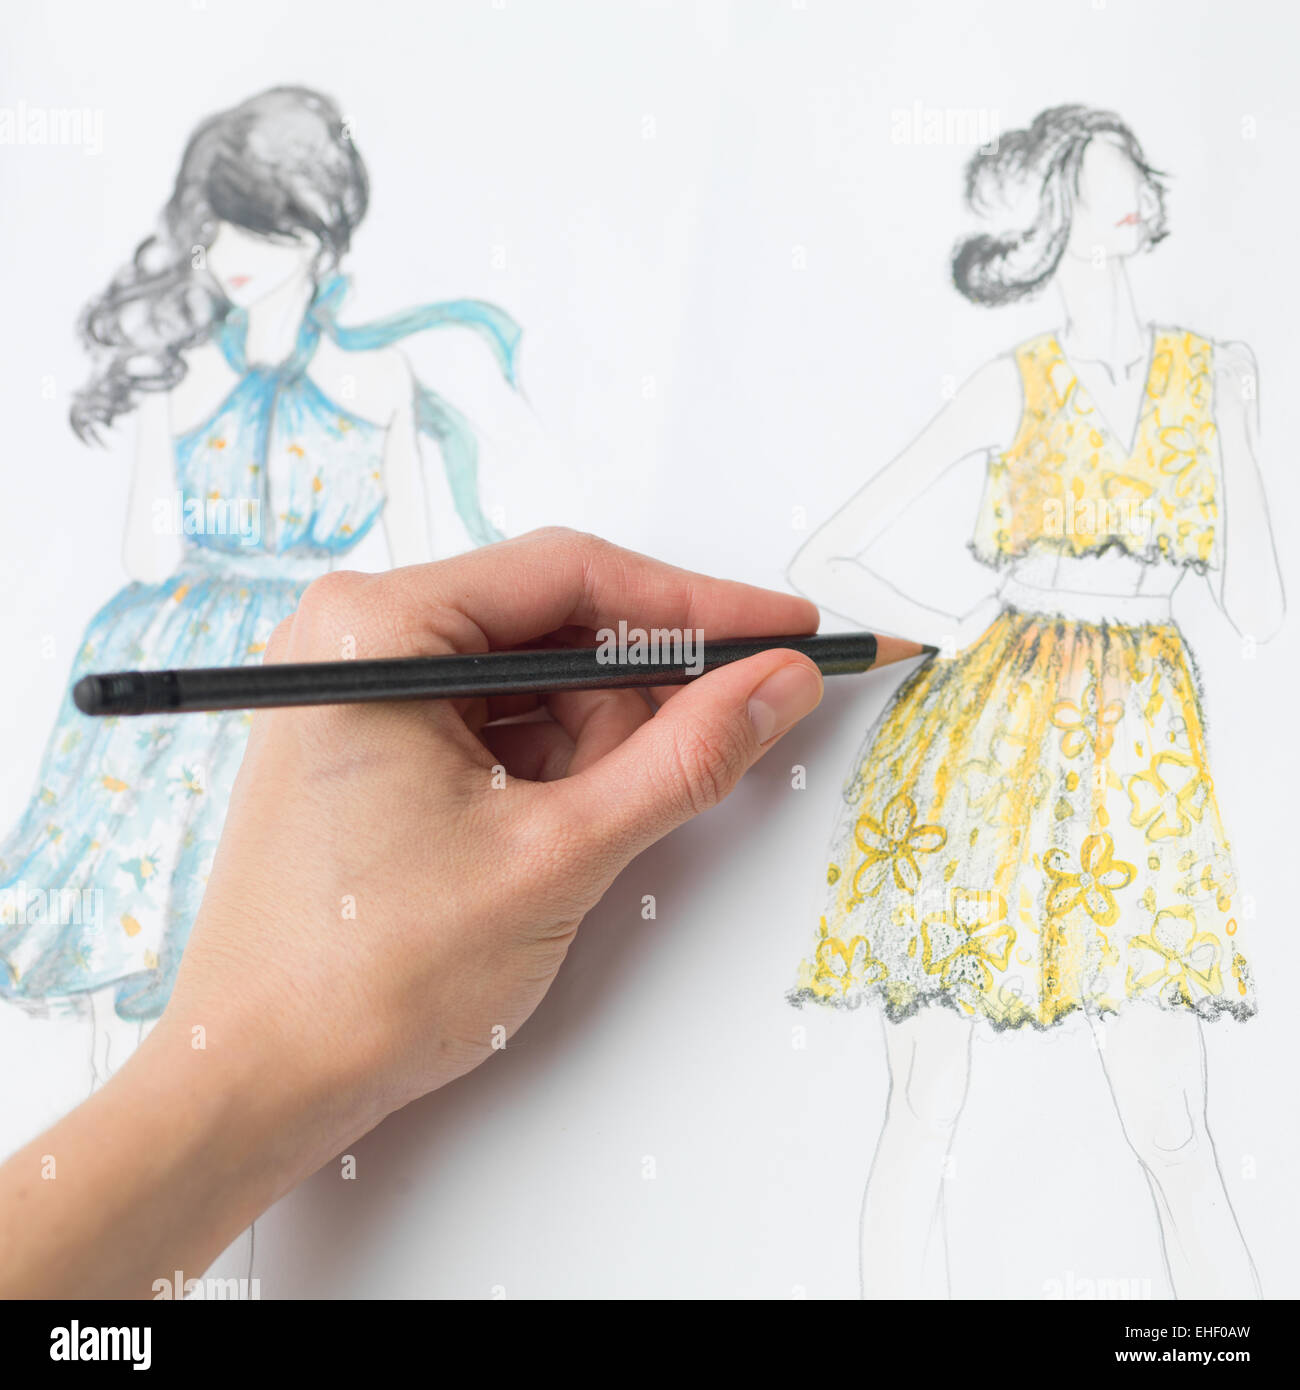 Gros plan du dessin à la main de l'homme fashion design sur papier Photo Stock